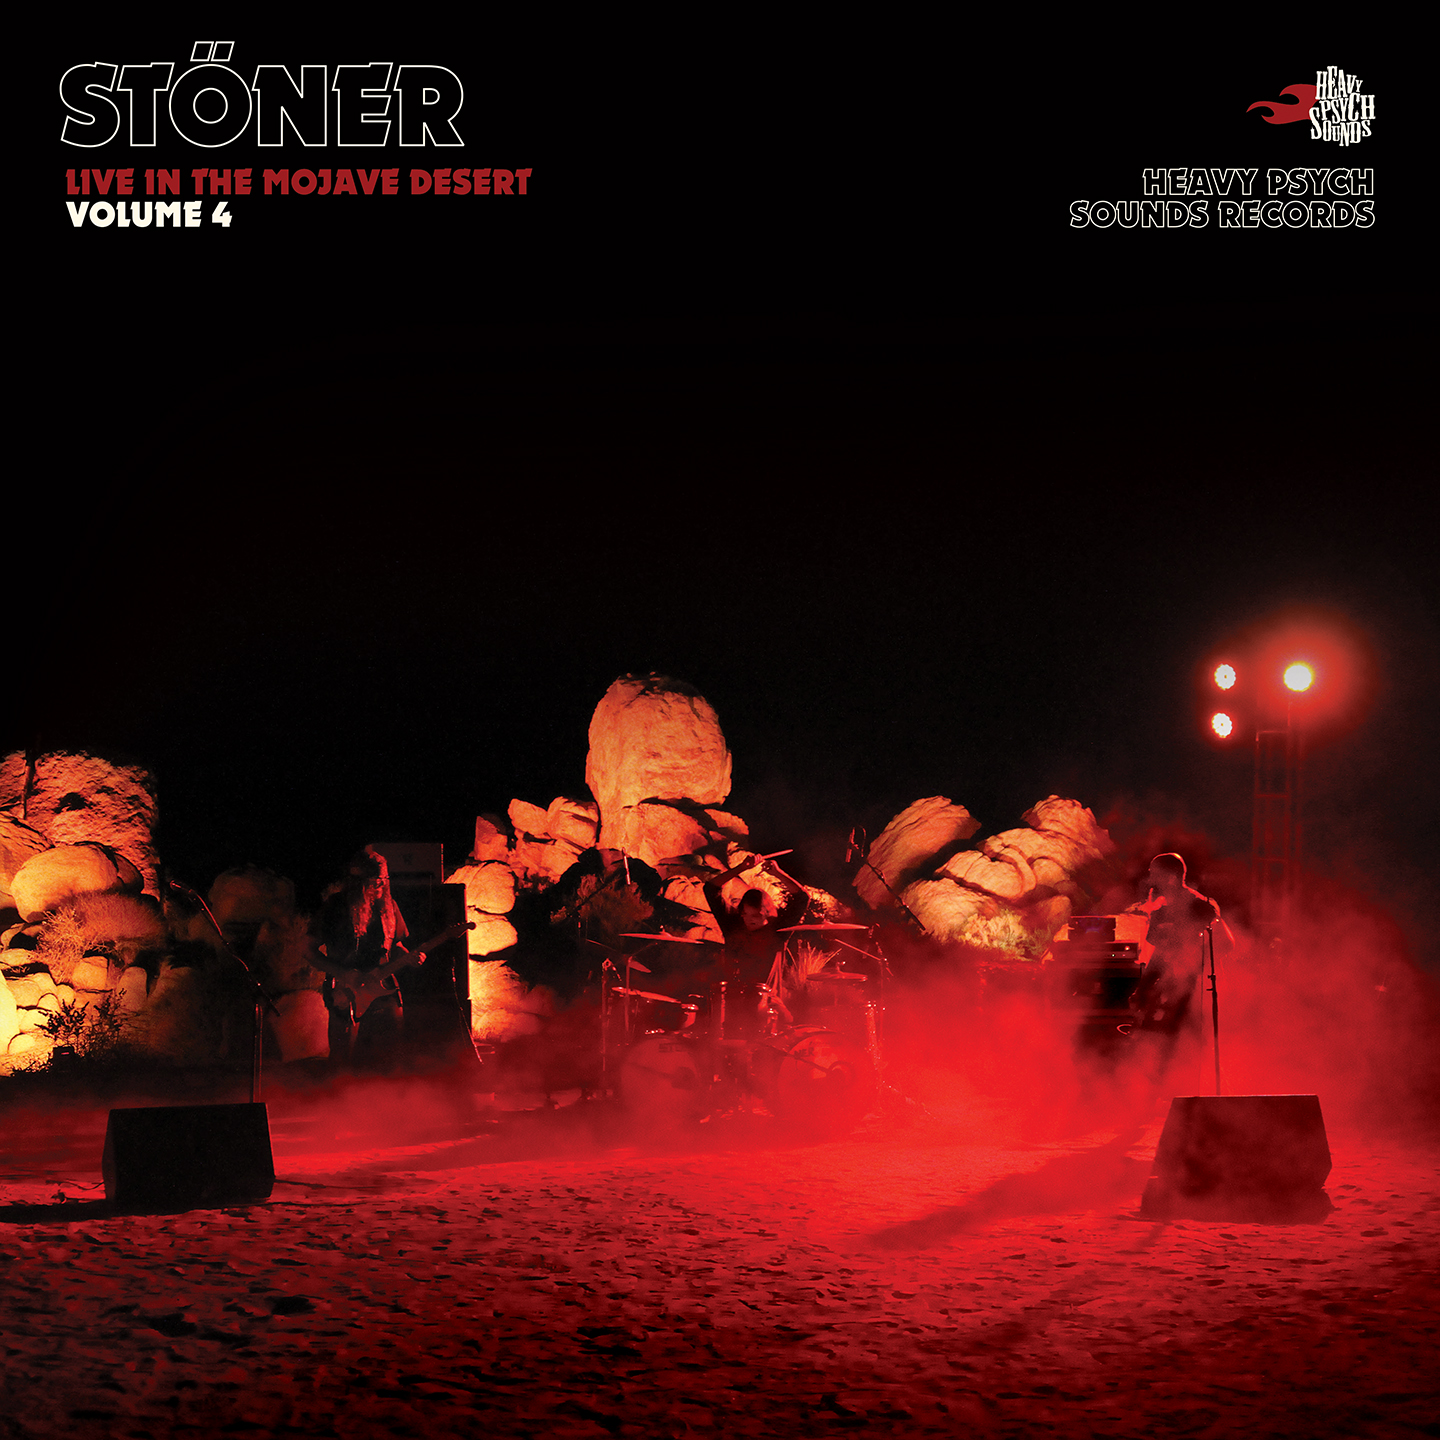 Stöner live in the mojave desert